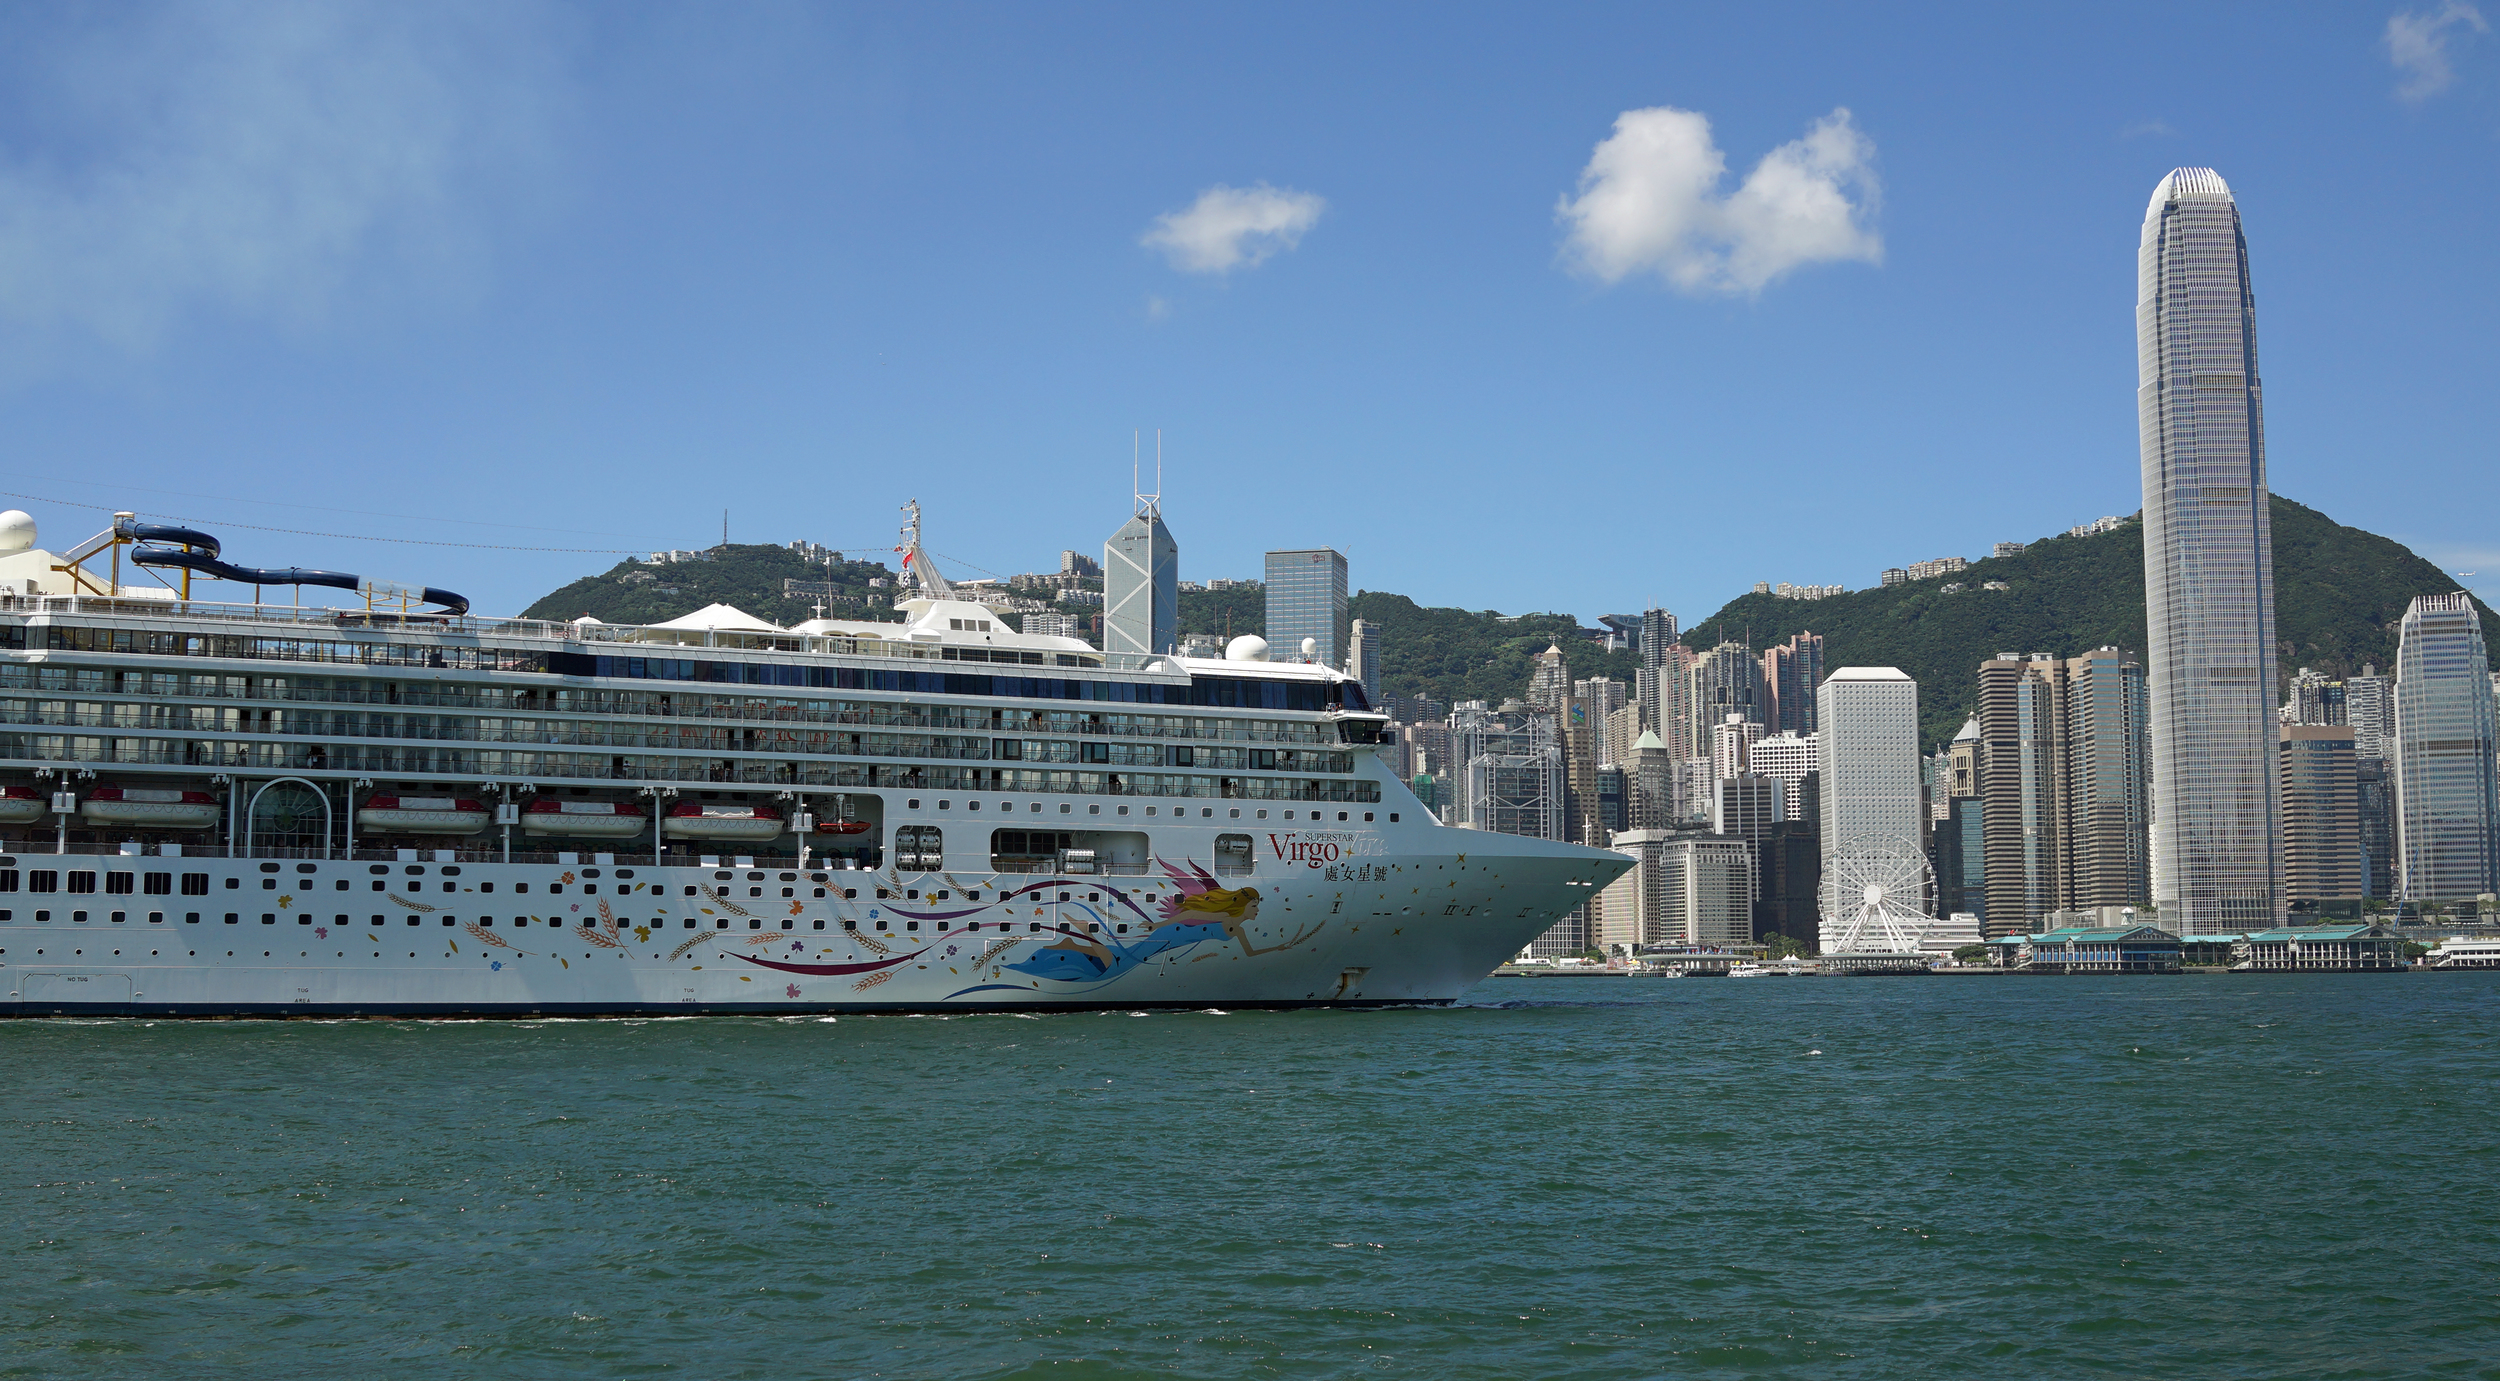 The Superstar Virgo is a gambling ship, here it is returning to Hong Kong on a glorious summers day last week....